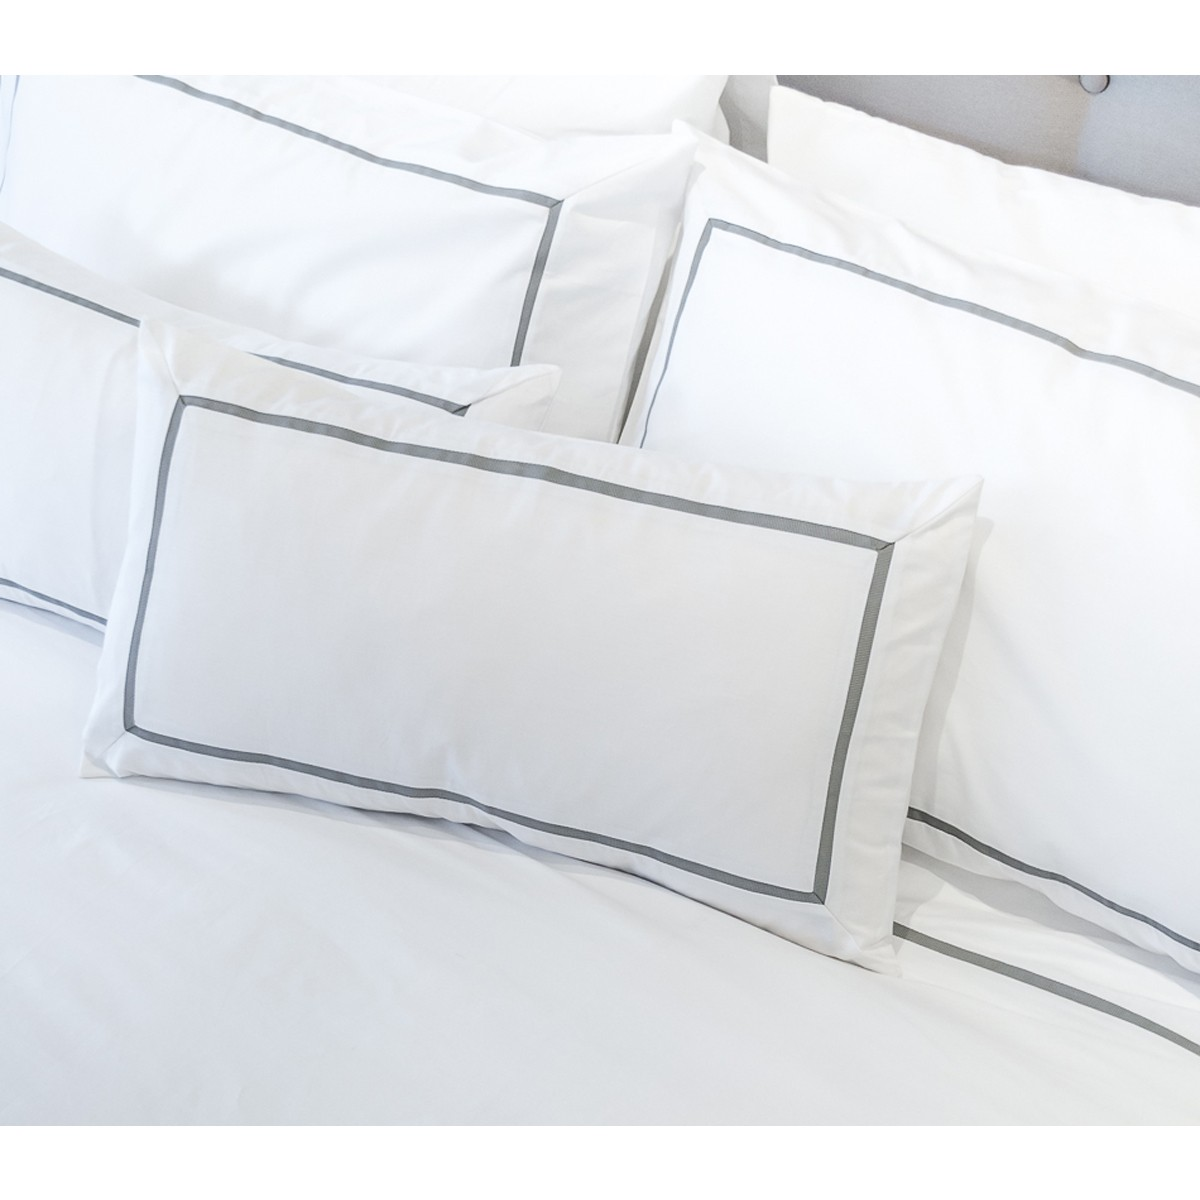 Inserted Grosgrain Bodouir Pillow Case